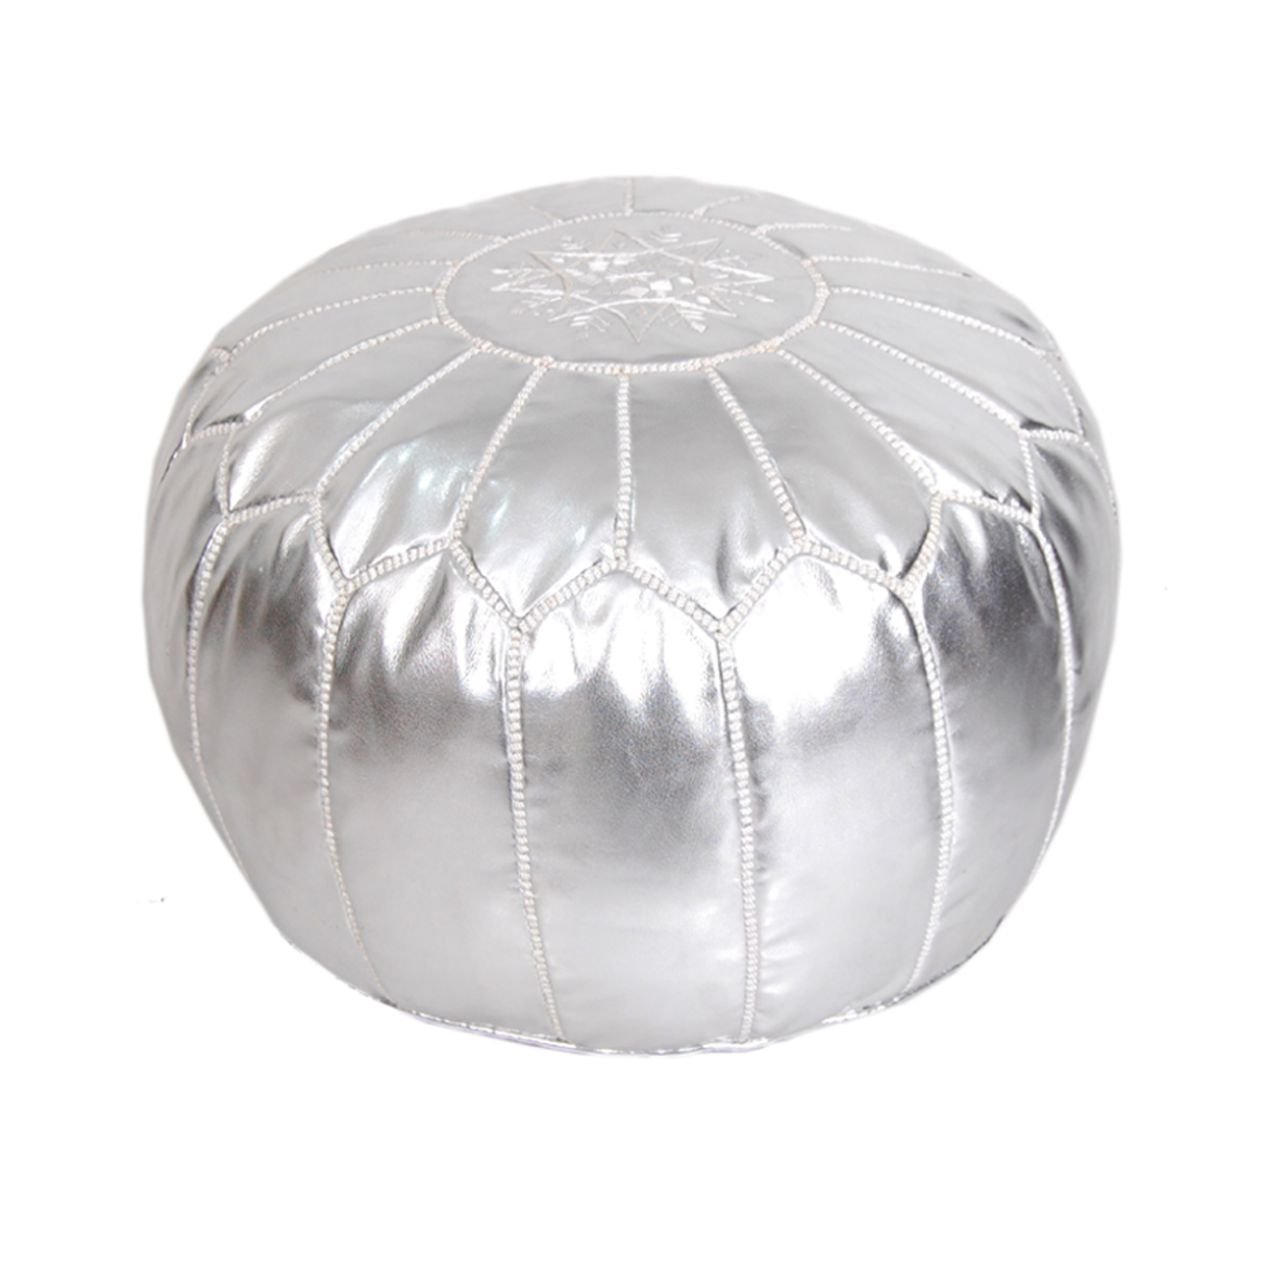 Moroccan Pouf Ottoman Footstool (Faux Leather) Genuine Hand-Stitched Seating | Unstuffed | Living Room, Bedroom, Sitting Area | Silver | Exclusive Designs